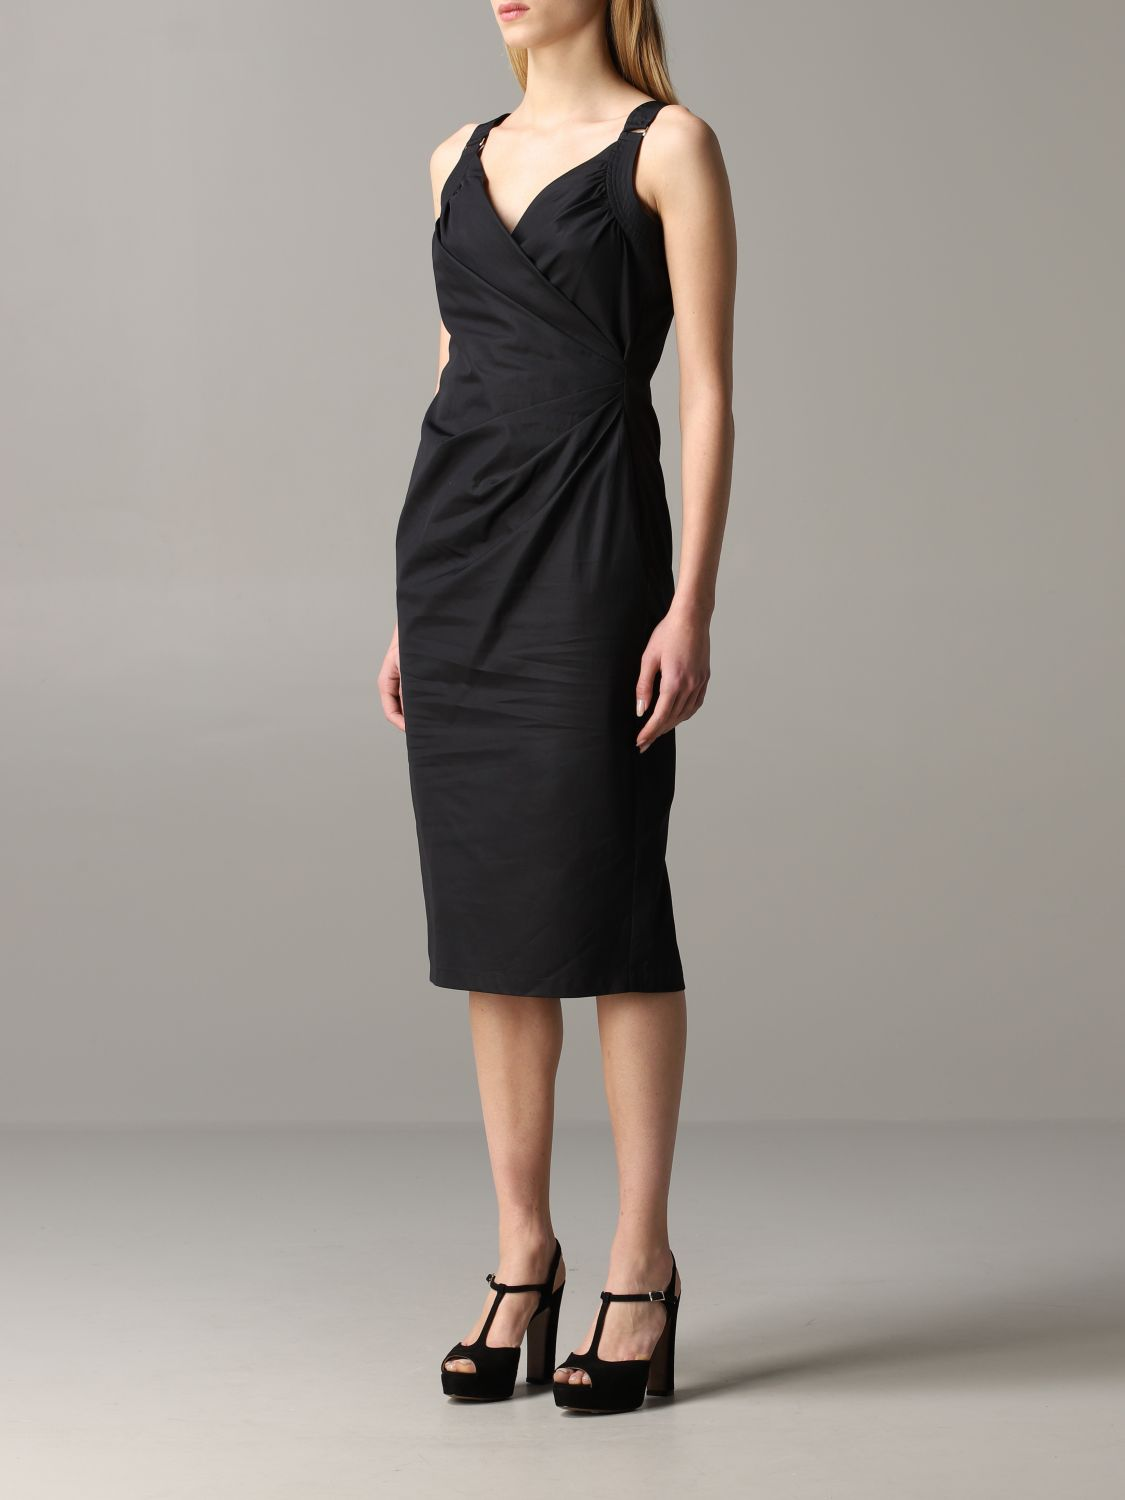 Max Mara draped dress black 3